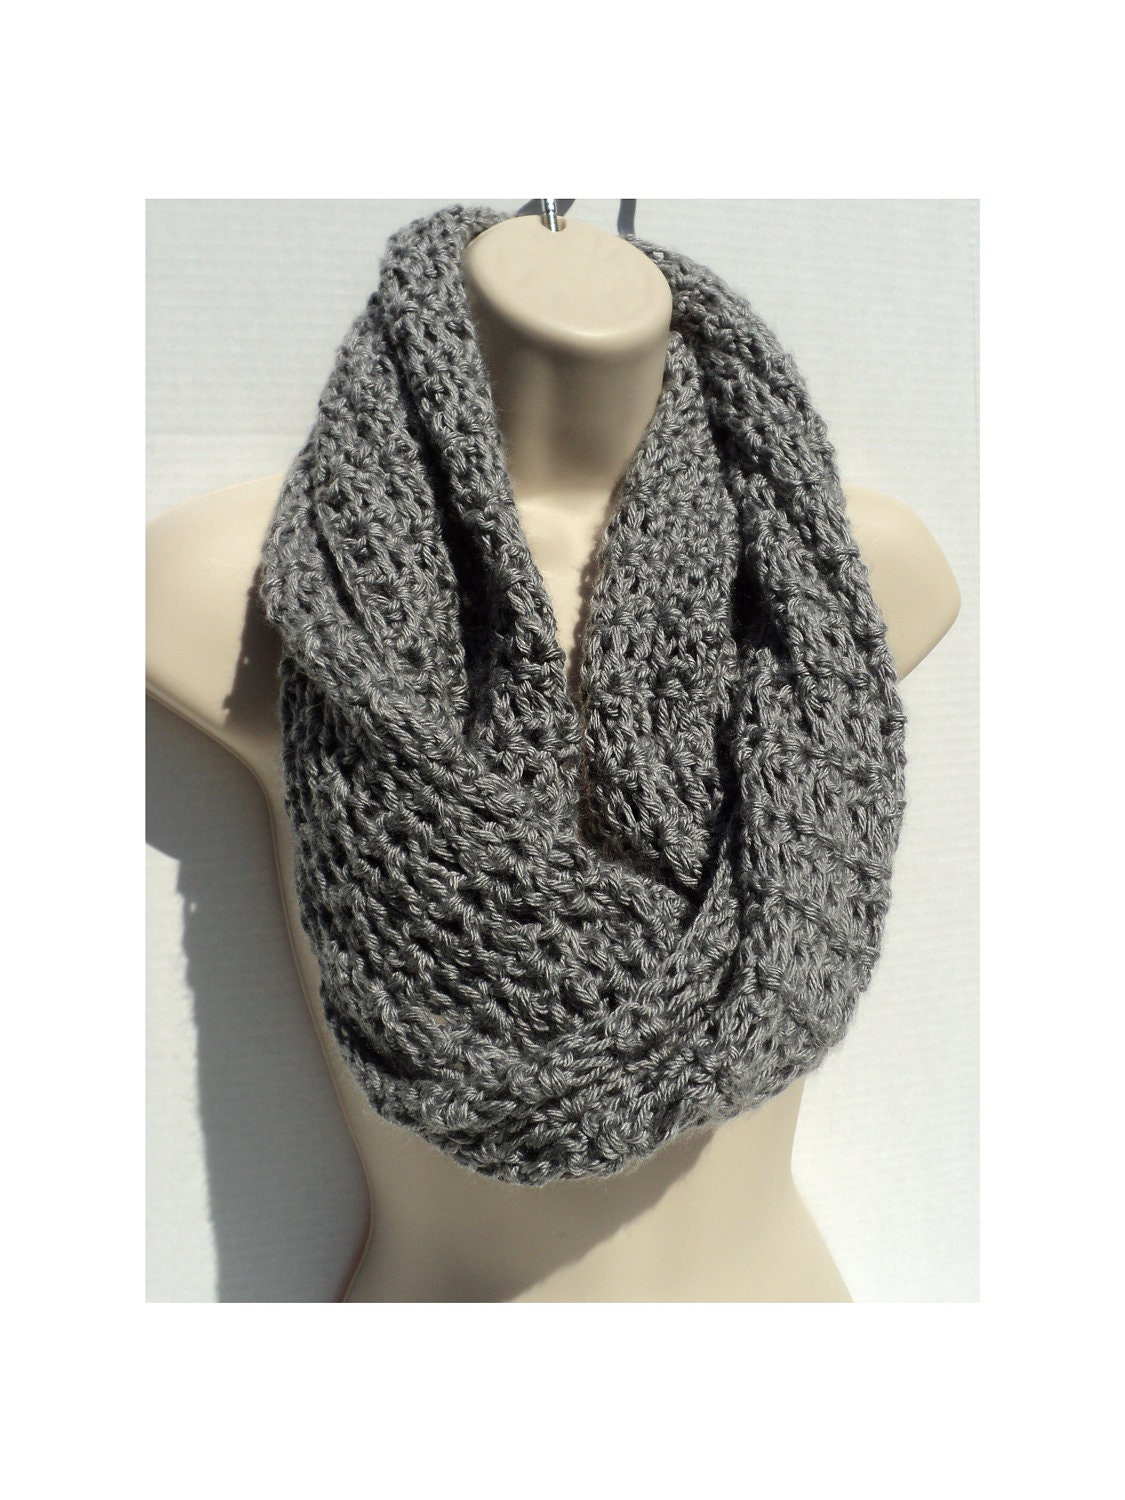 CROCHET PATTERN ONLY 3 Patterns in 1 Simple by Lifeinsmallspaces Neck Scarves Crochet Patterns